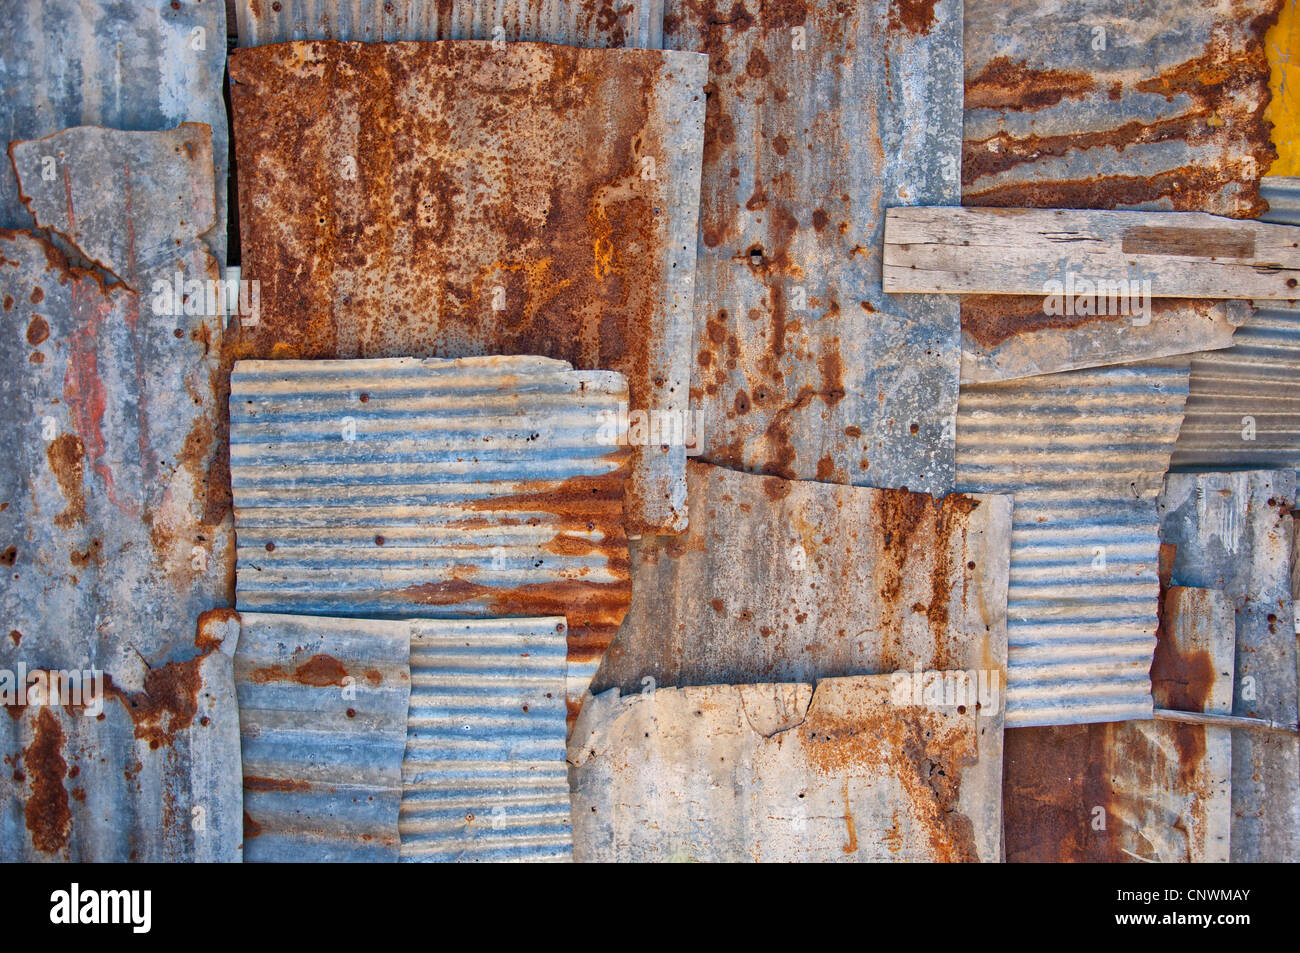 An Abstract Background Image Of Rusty Corrugated Iron